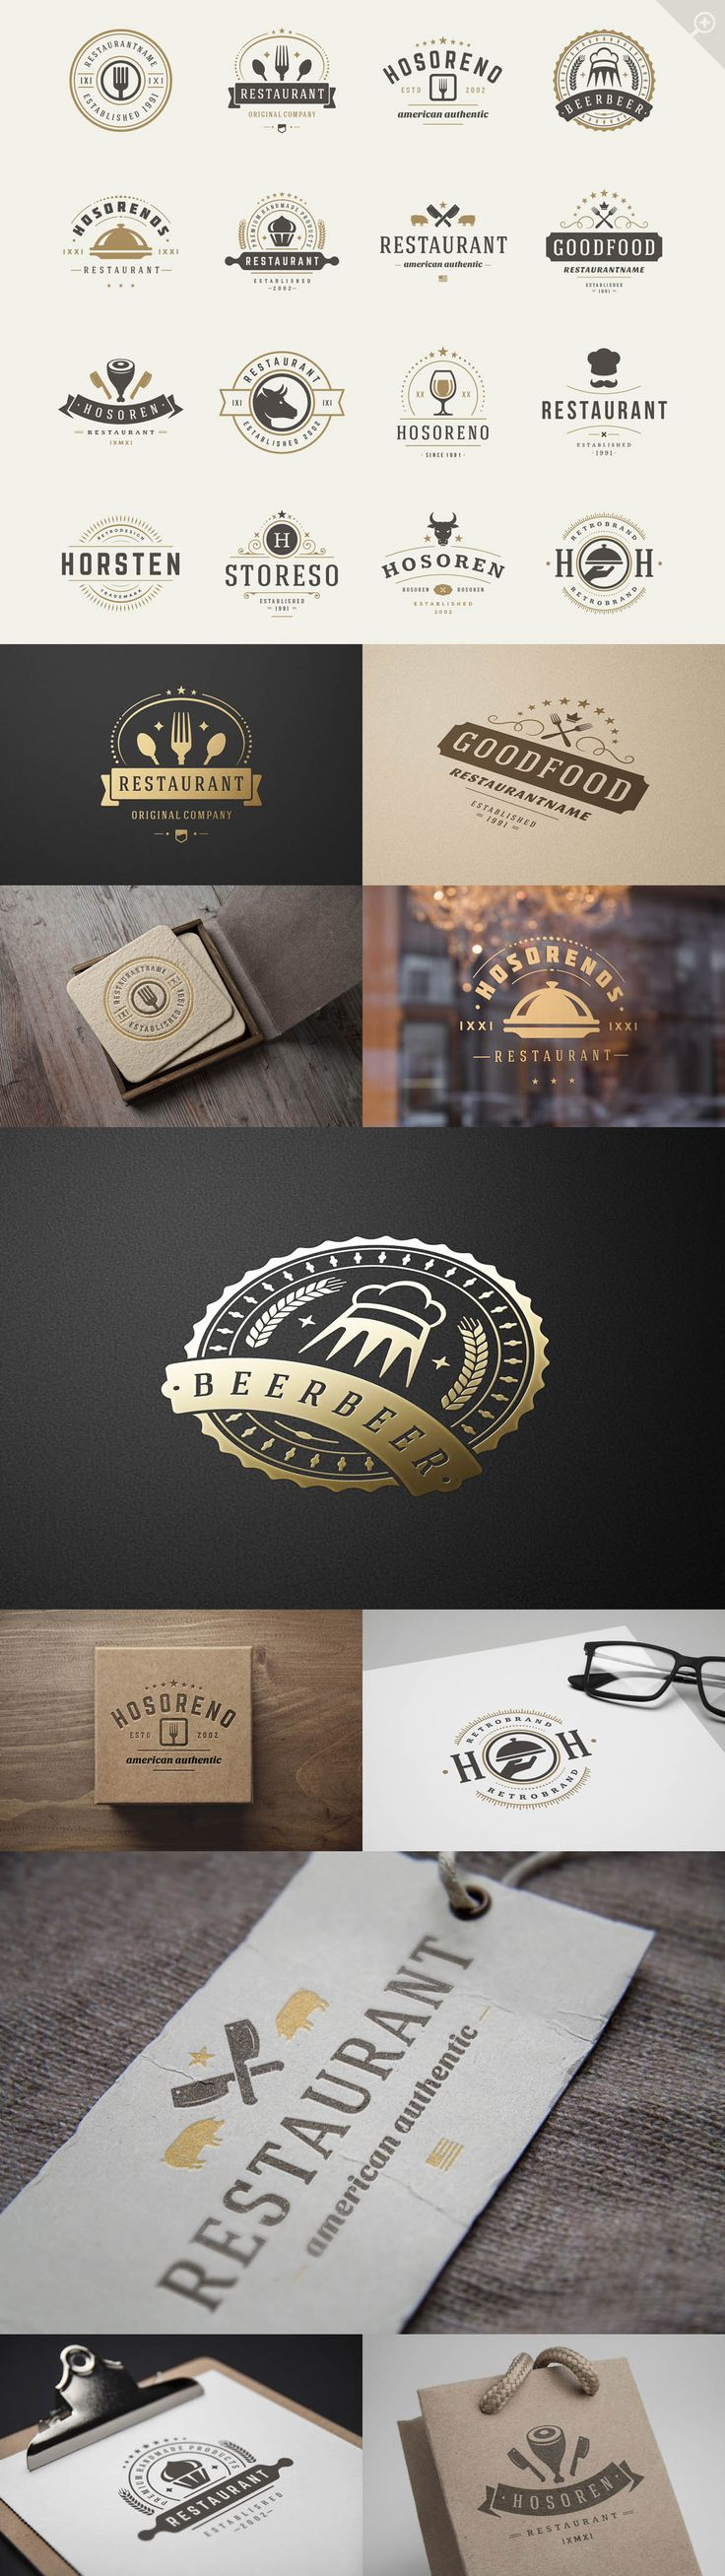 16 Restaurant Logotypes and Badges #design Buy Now: https://creativemarket.com/VasyaKo/324541-16-Restaurant-Logotypes-and-Badges?u=ksioks